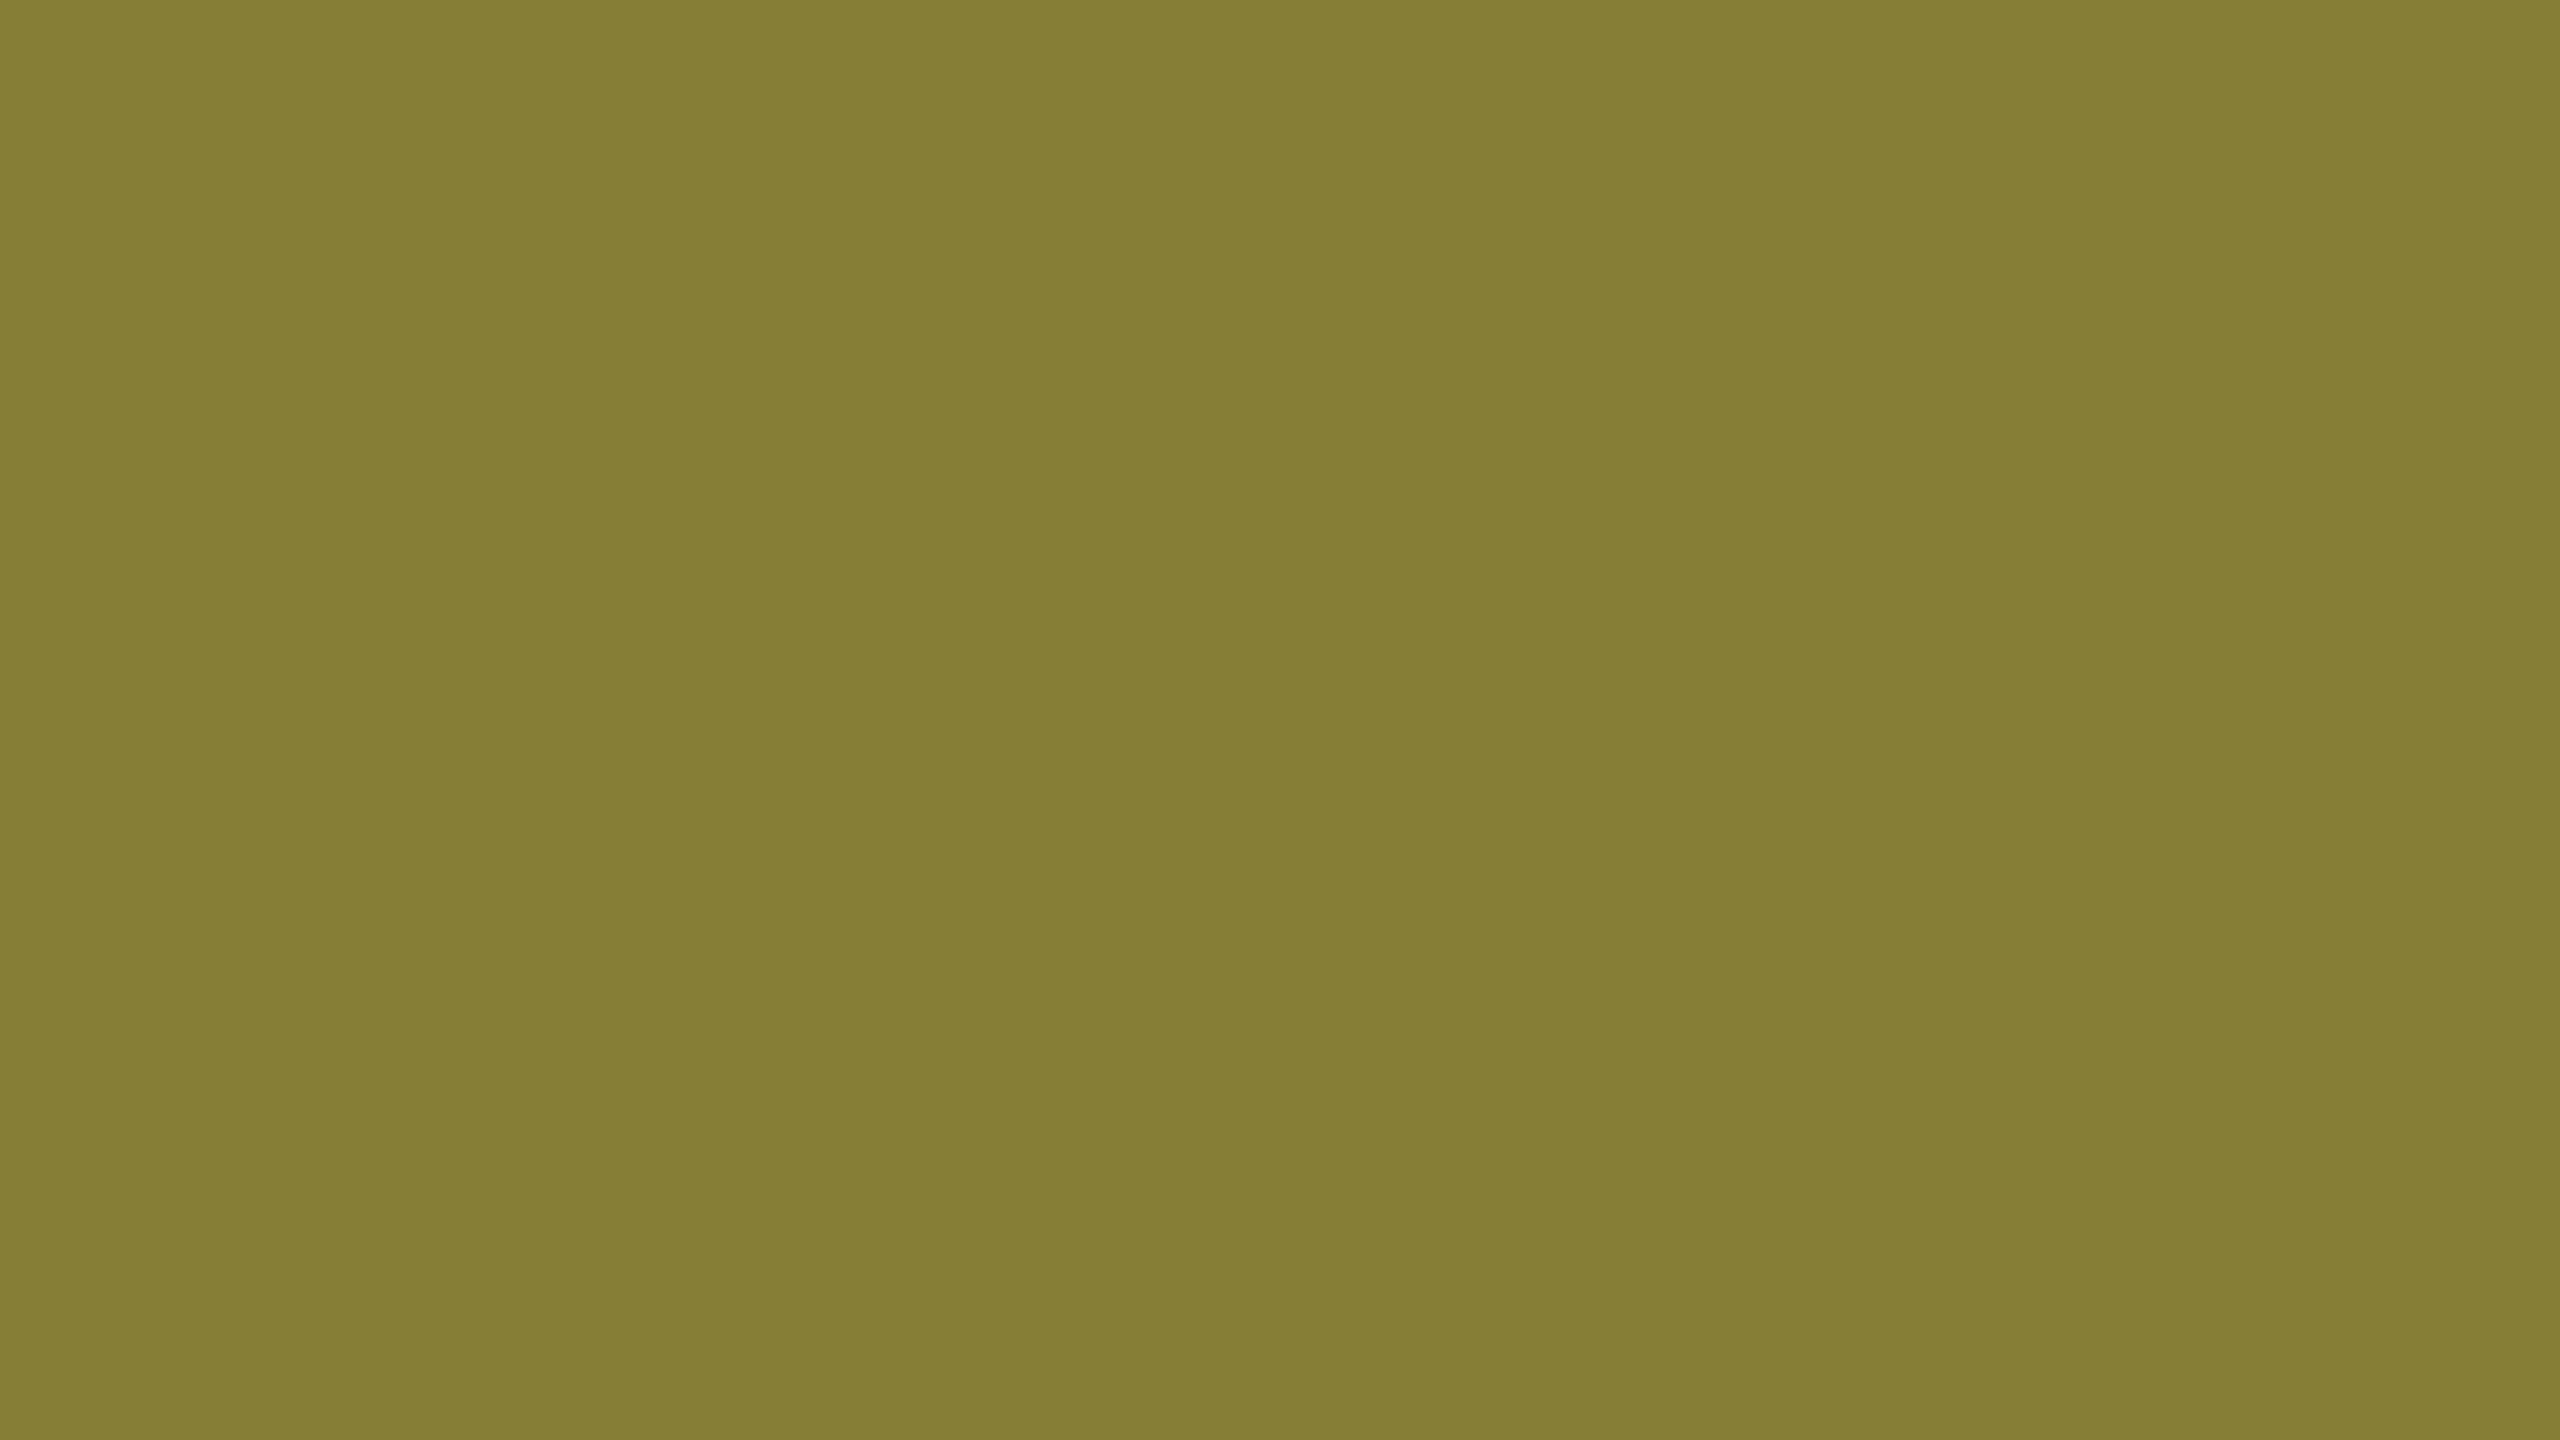 2560x1440 Old Moss Green Solid Color Background